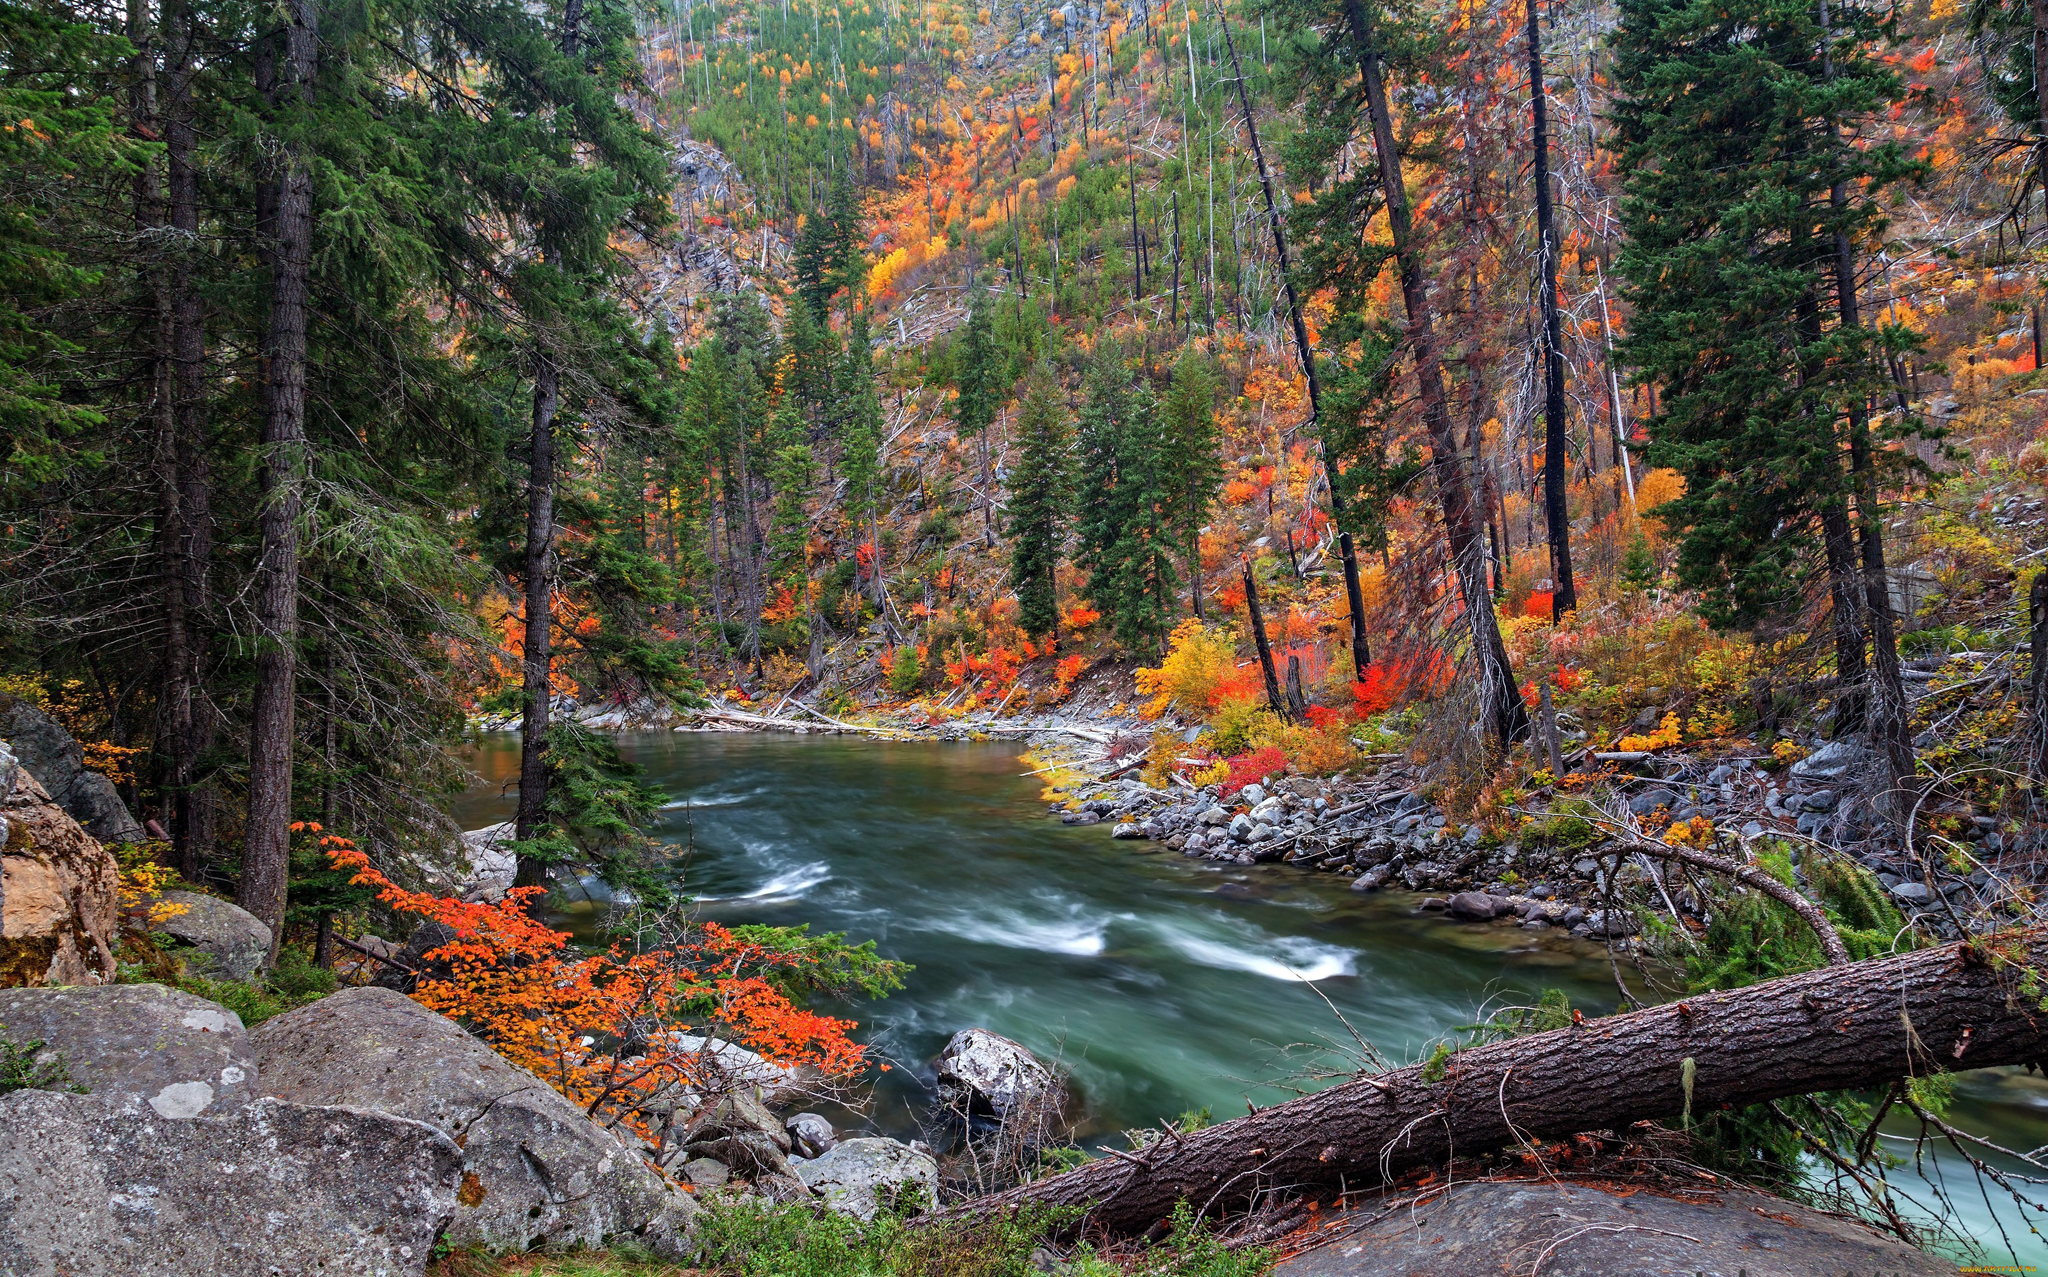 Slope, trees, rocks, river / 2048 x 1277 / Mountains / Photography ...